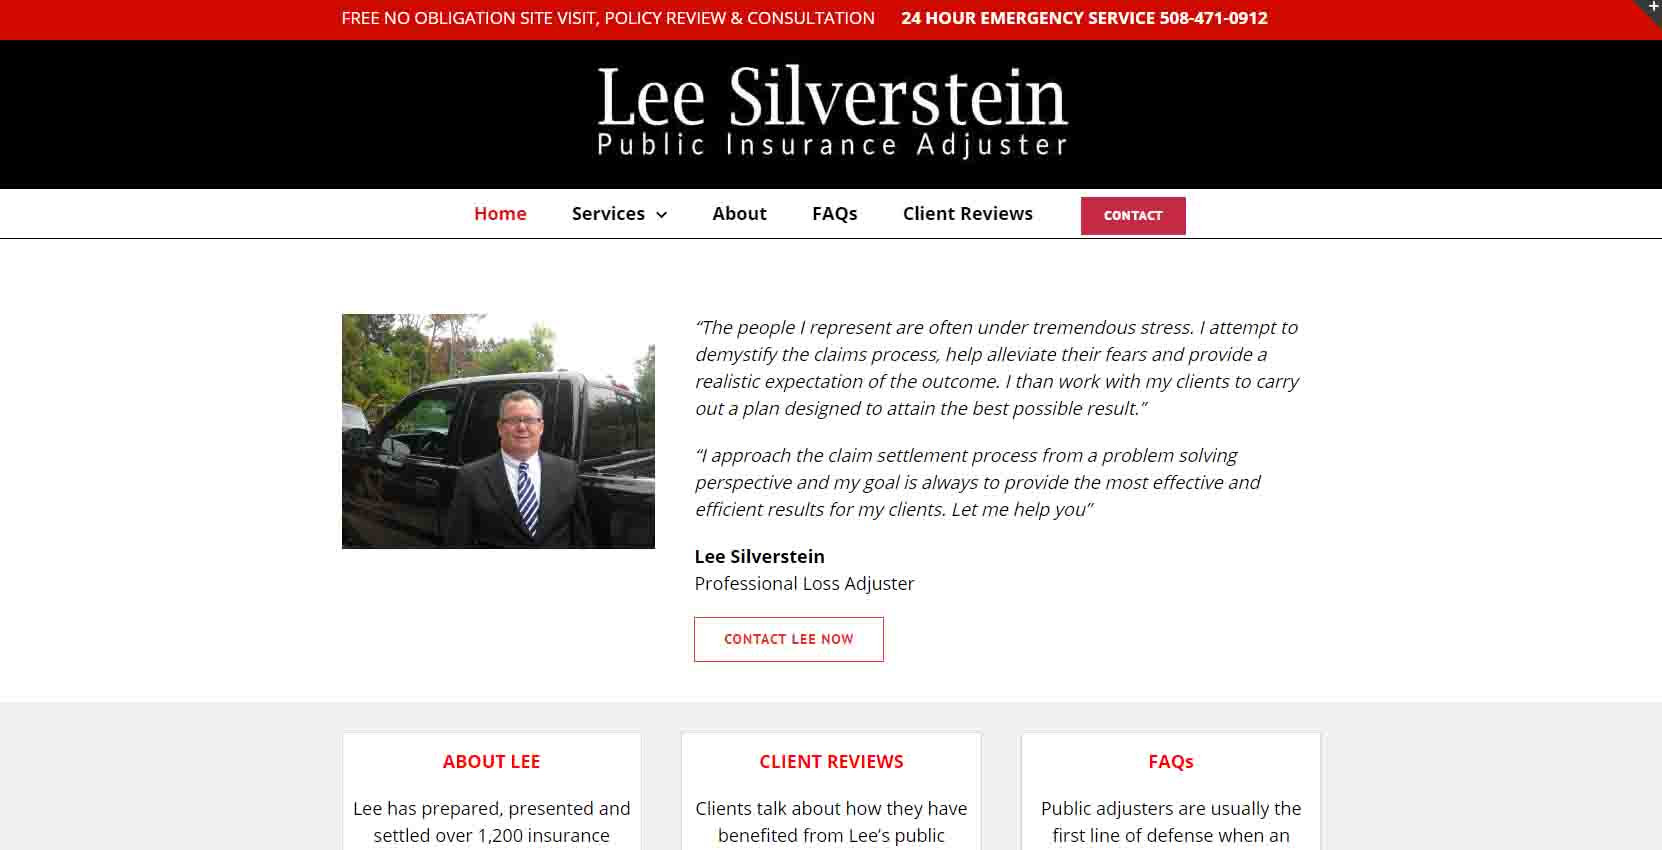 Lee Silverstein Public Insurance Adjuster